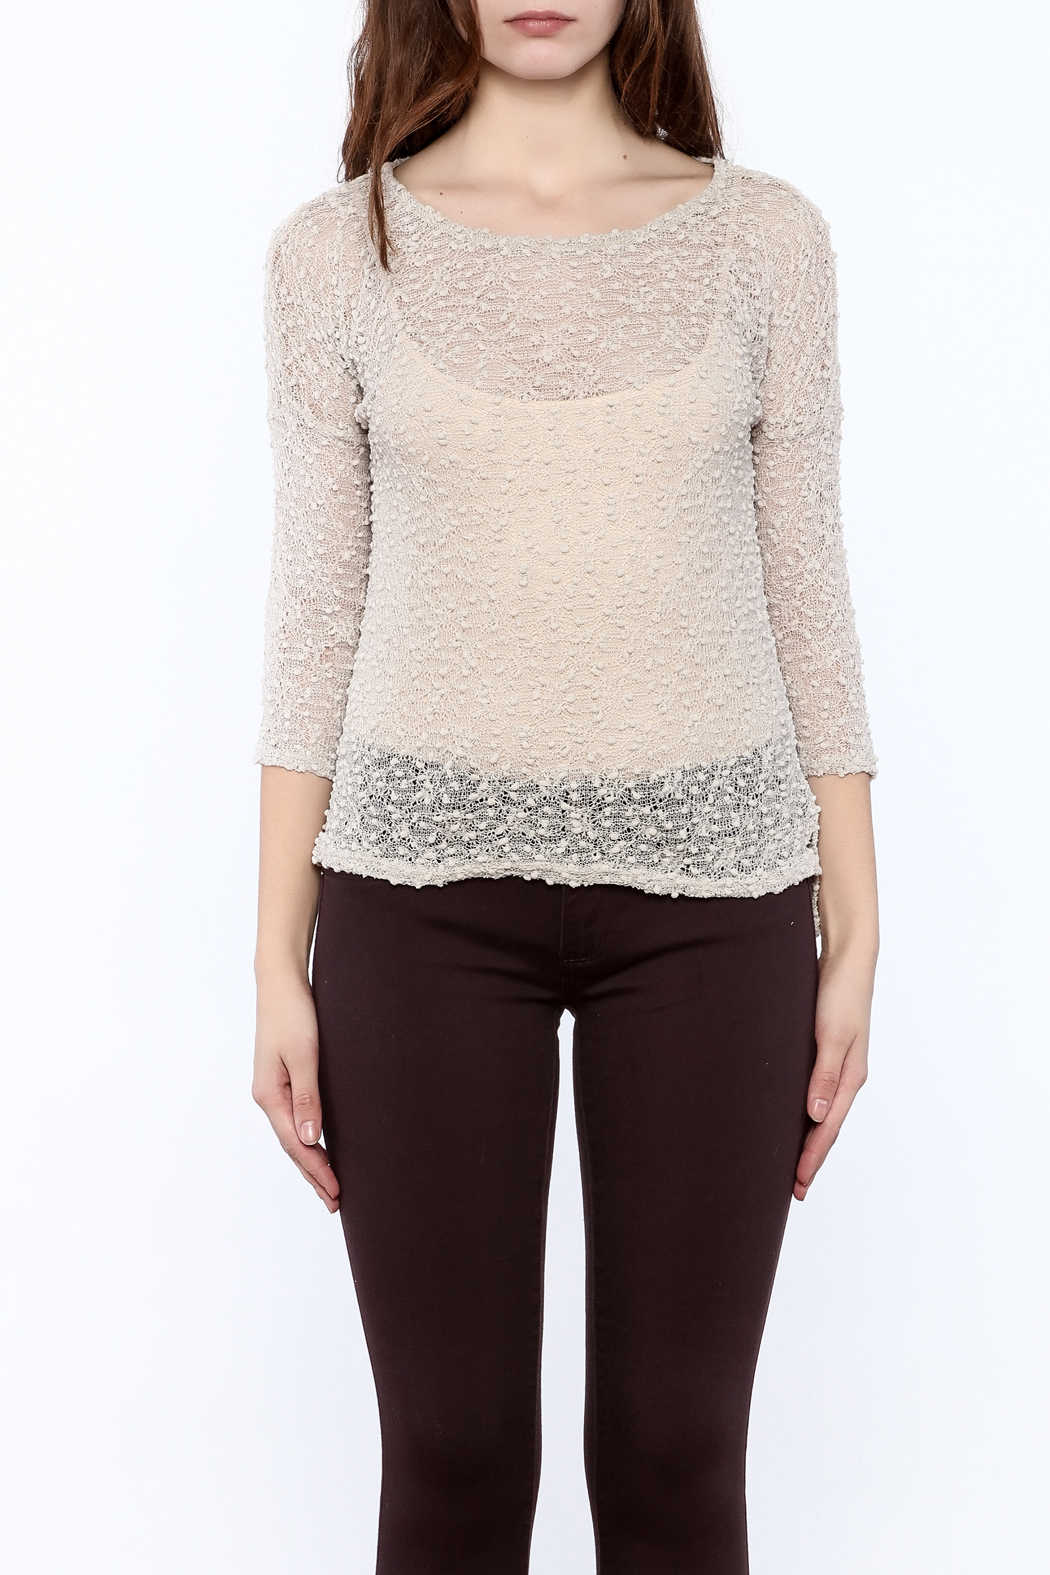 Rousseau Gritty Beige Top - Side Cropped Image